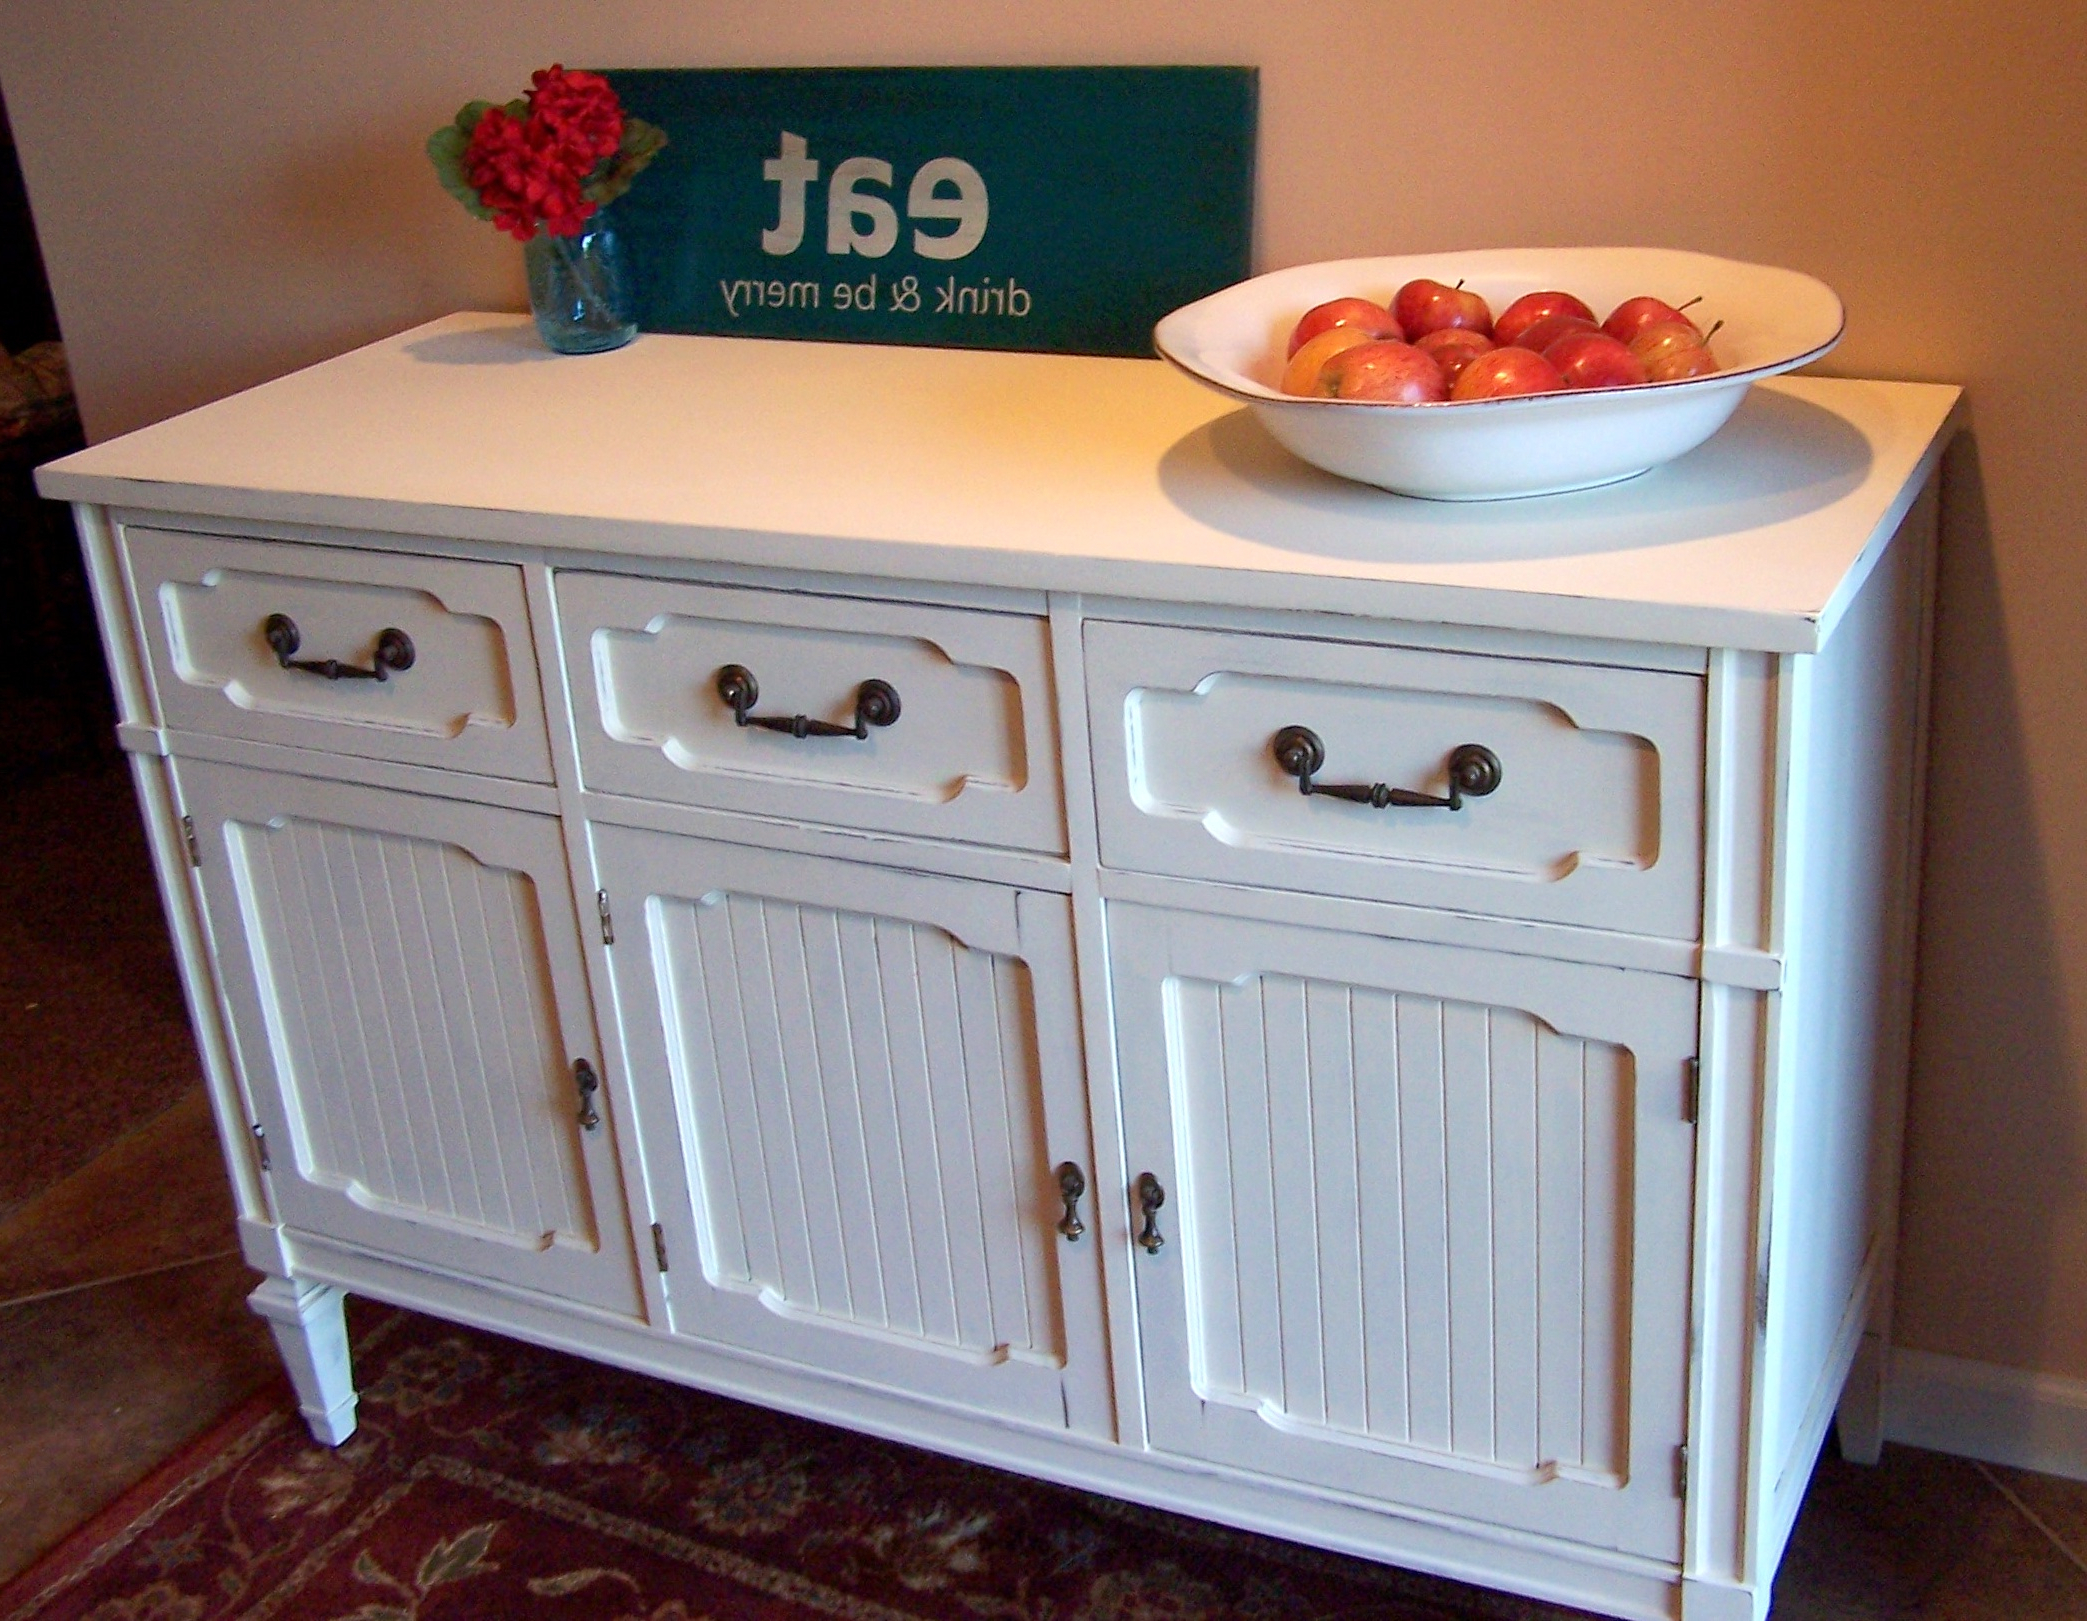 Antique White Sideboards In Recent White Buffet Sideboard Brilliant Or Fresh On Old Urban With Regard (View 11 of 20)